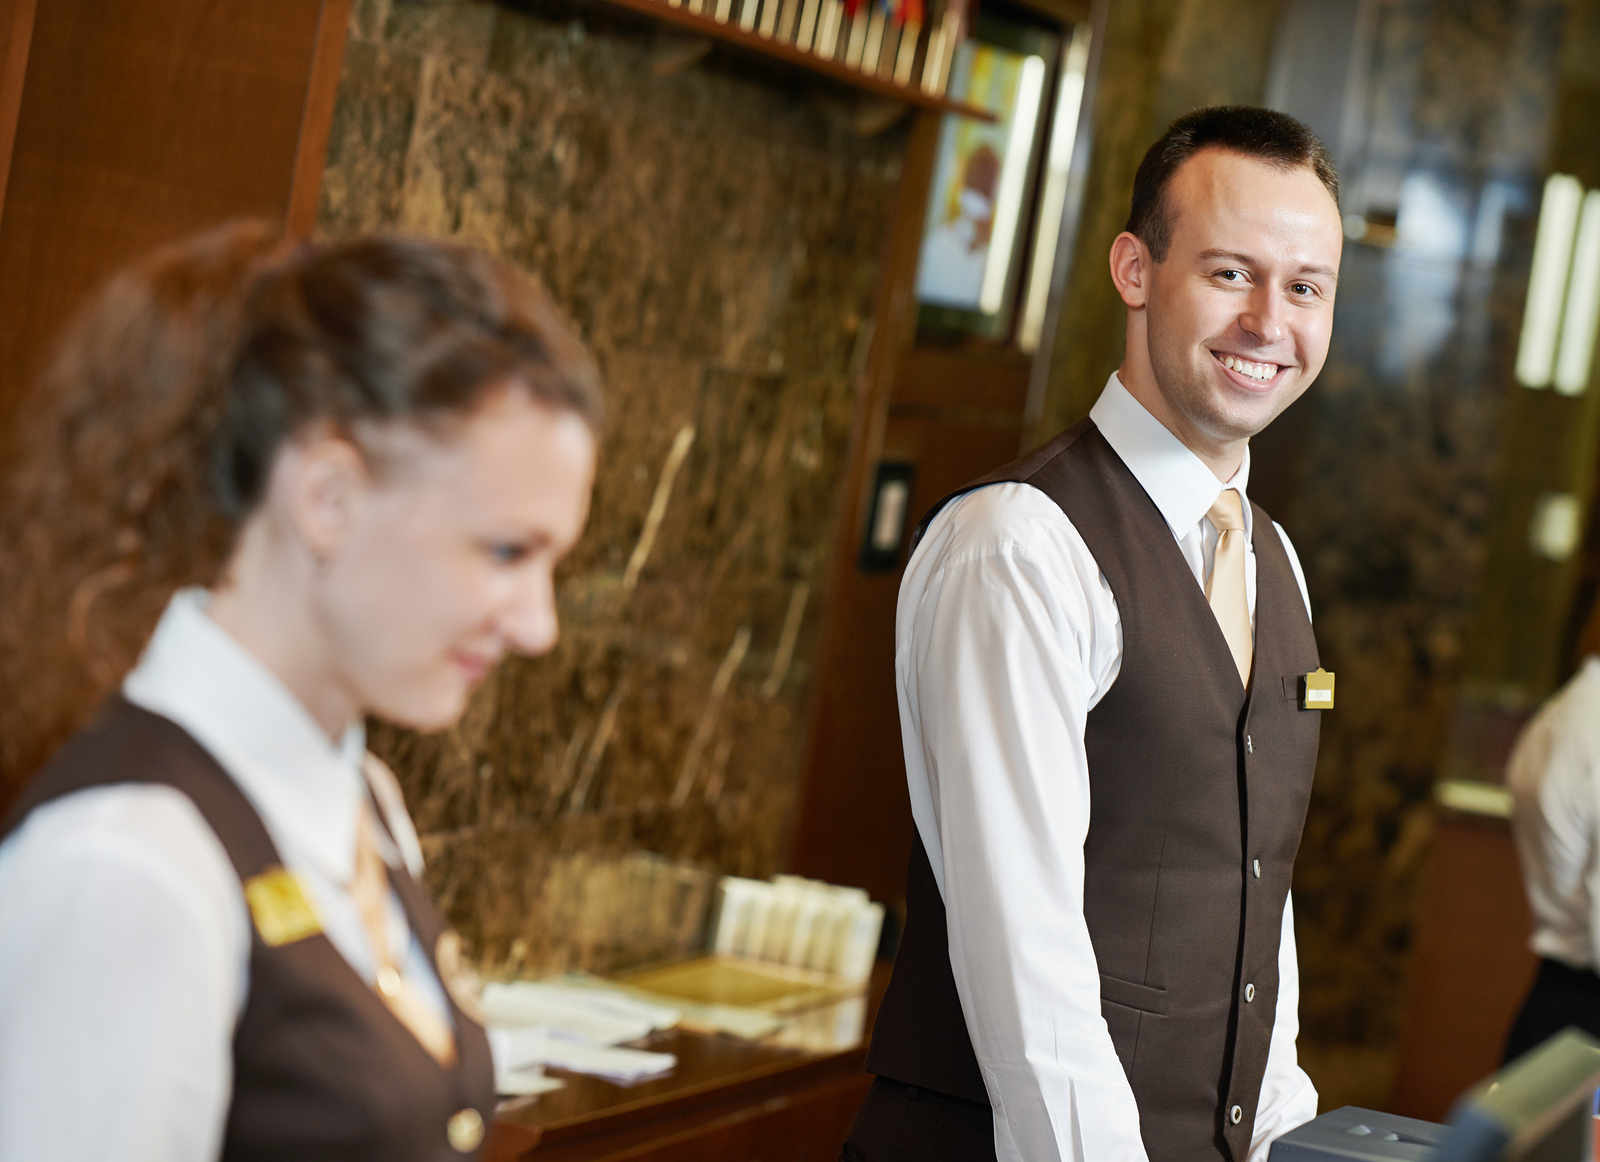 5 Reasons Why Jobs In The Hotel Industry Are So Satisfying